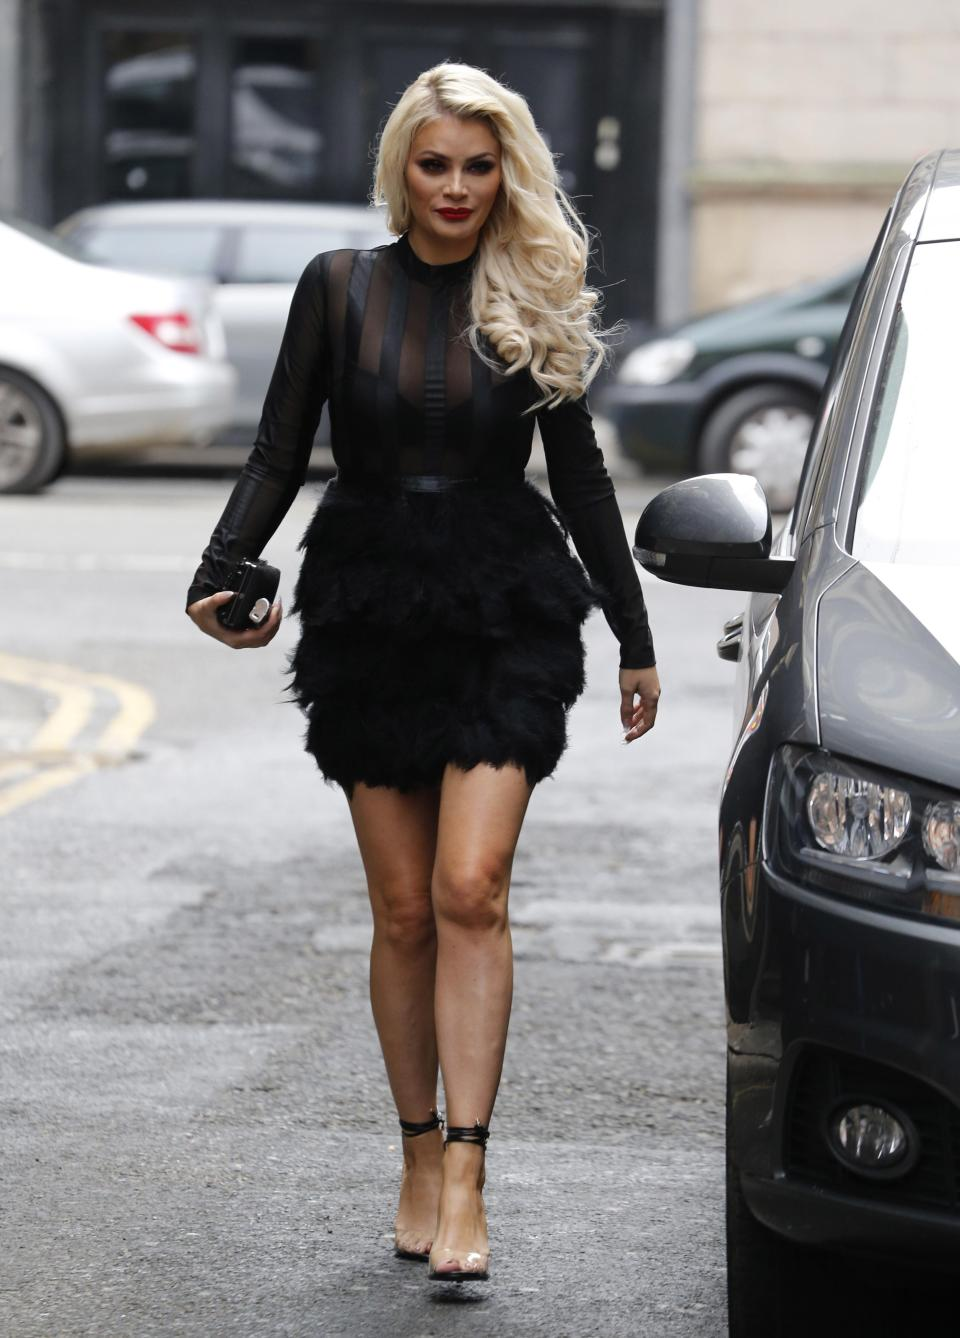 Chloe has been a regular member of the TOWIE cast since series two, in 2011